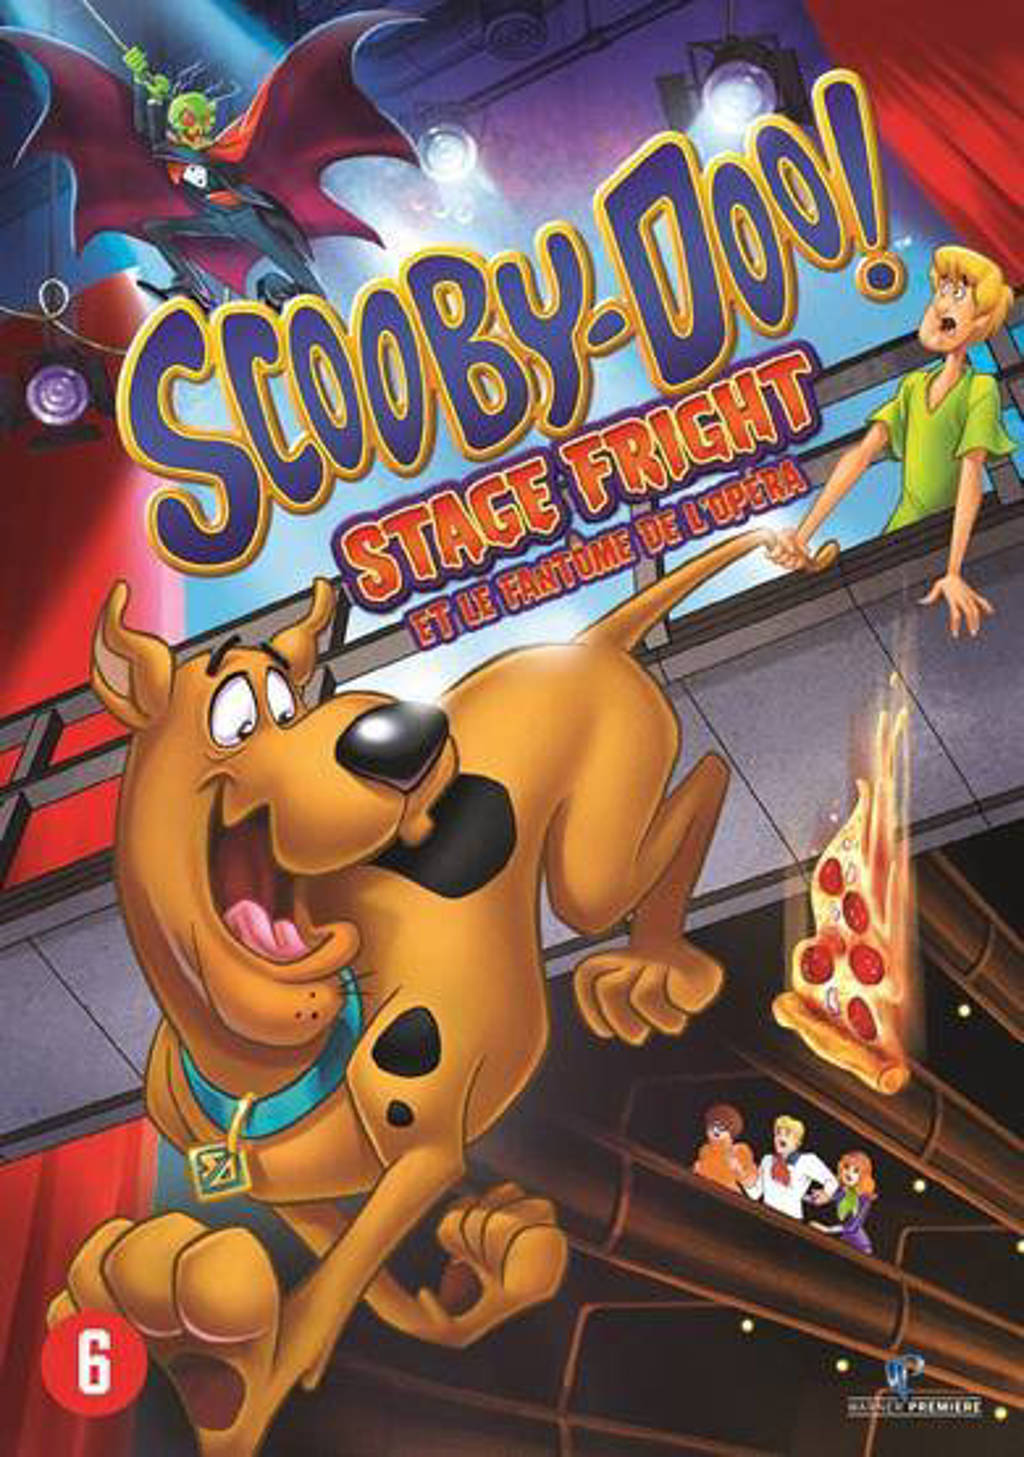 Scooby Doo - Stage fright (DVD)